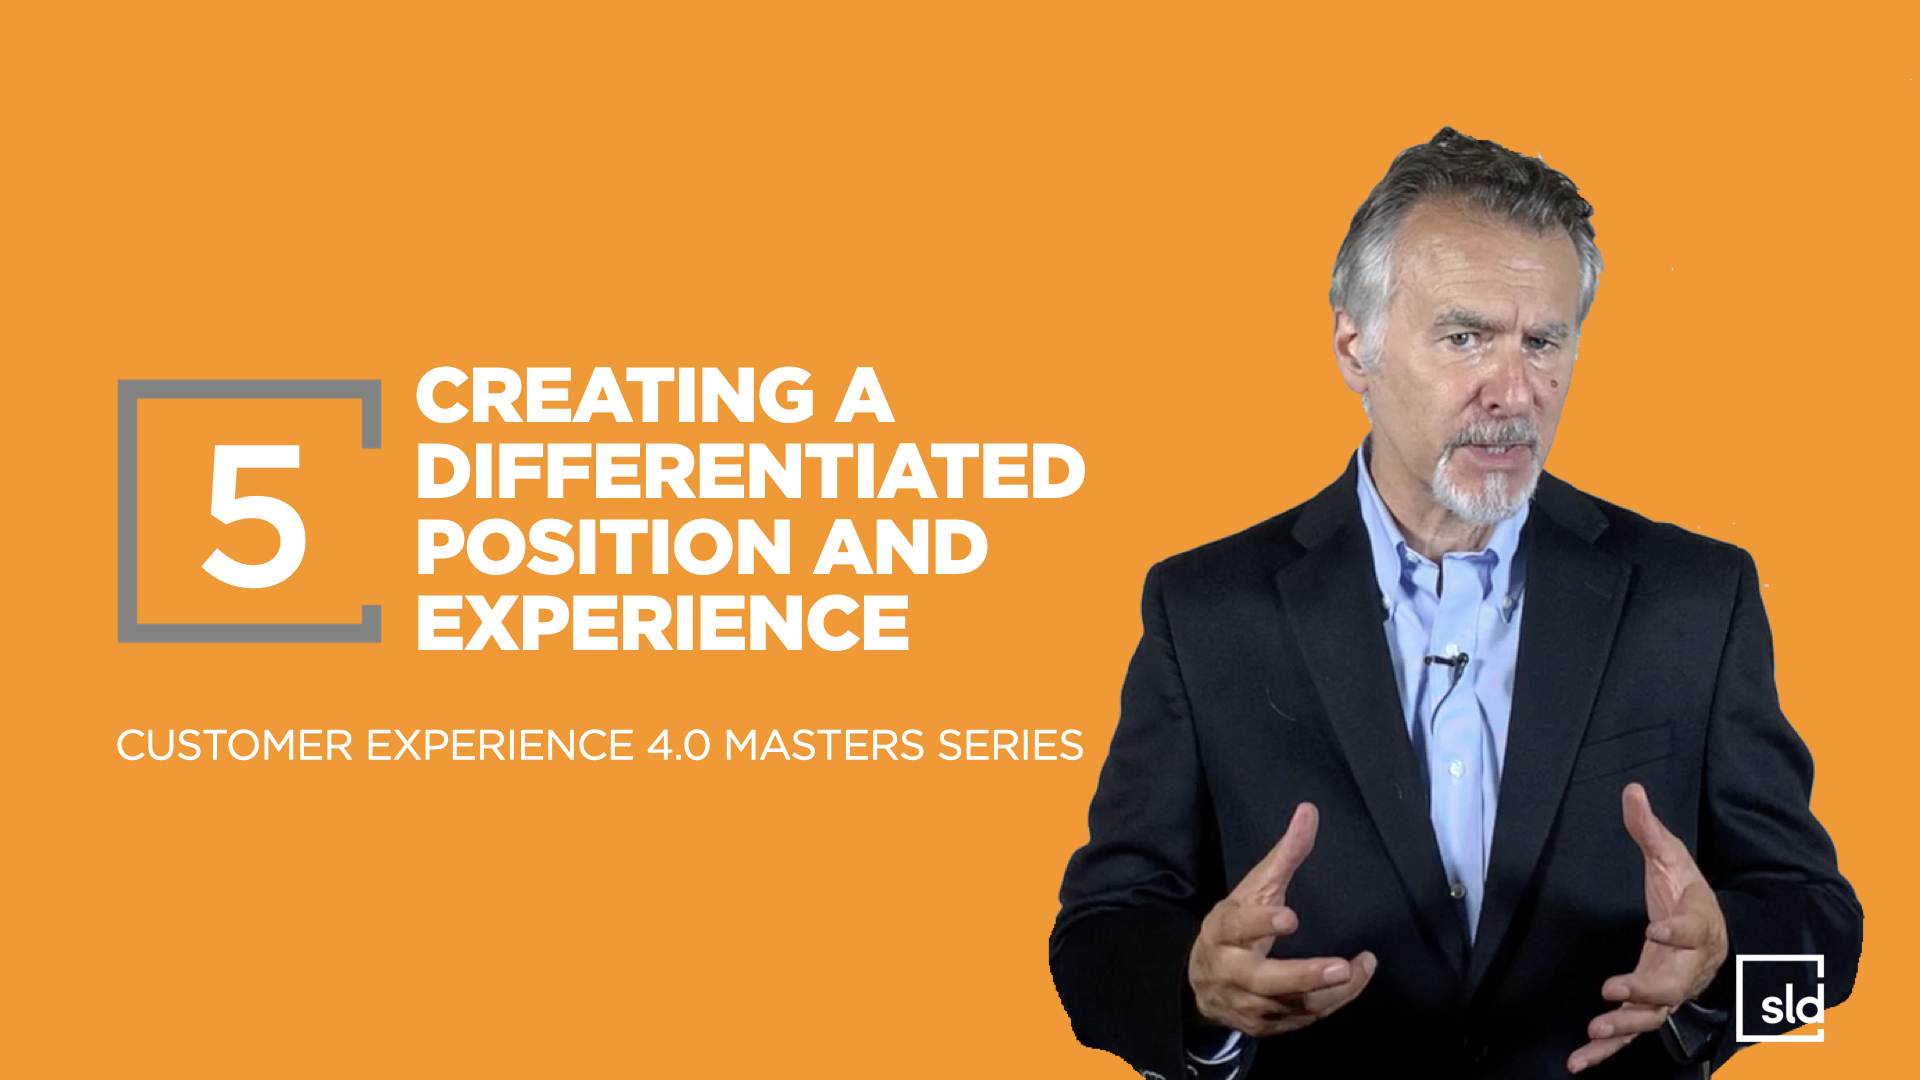 5. Creating a Differentiated Position and Experience